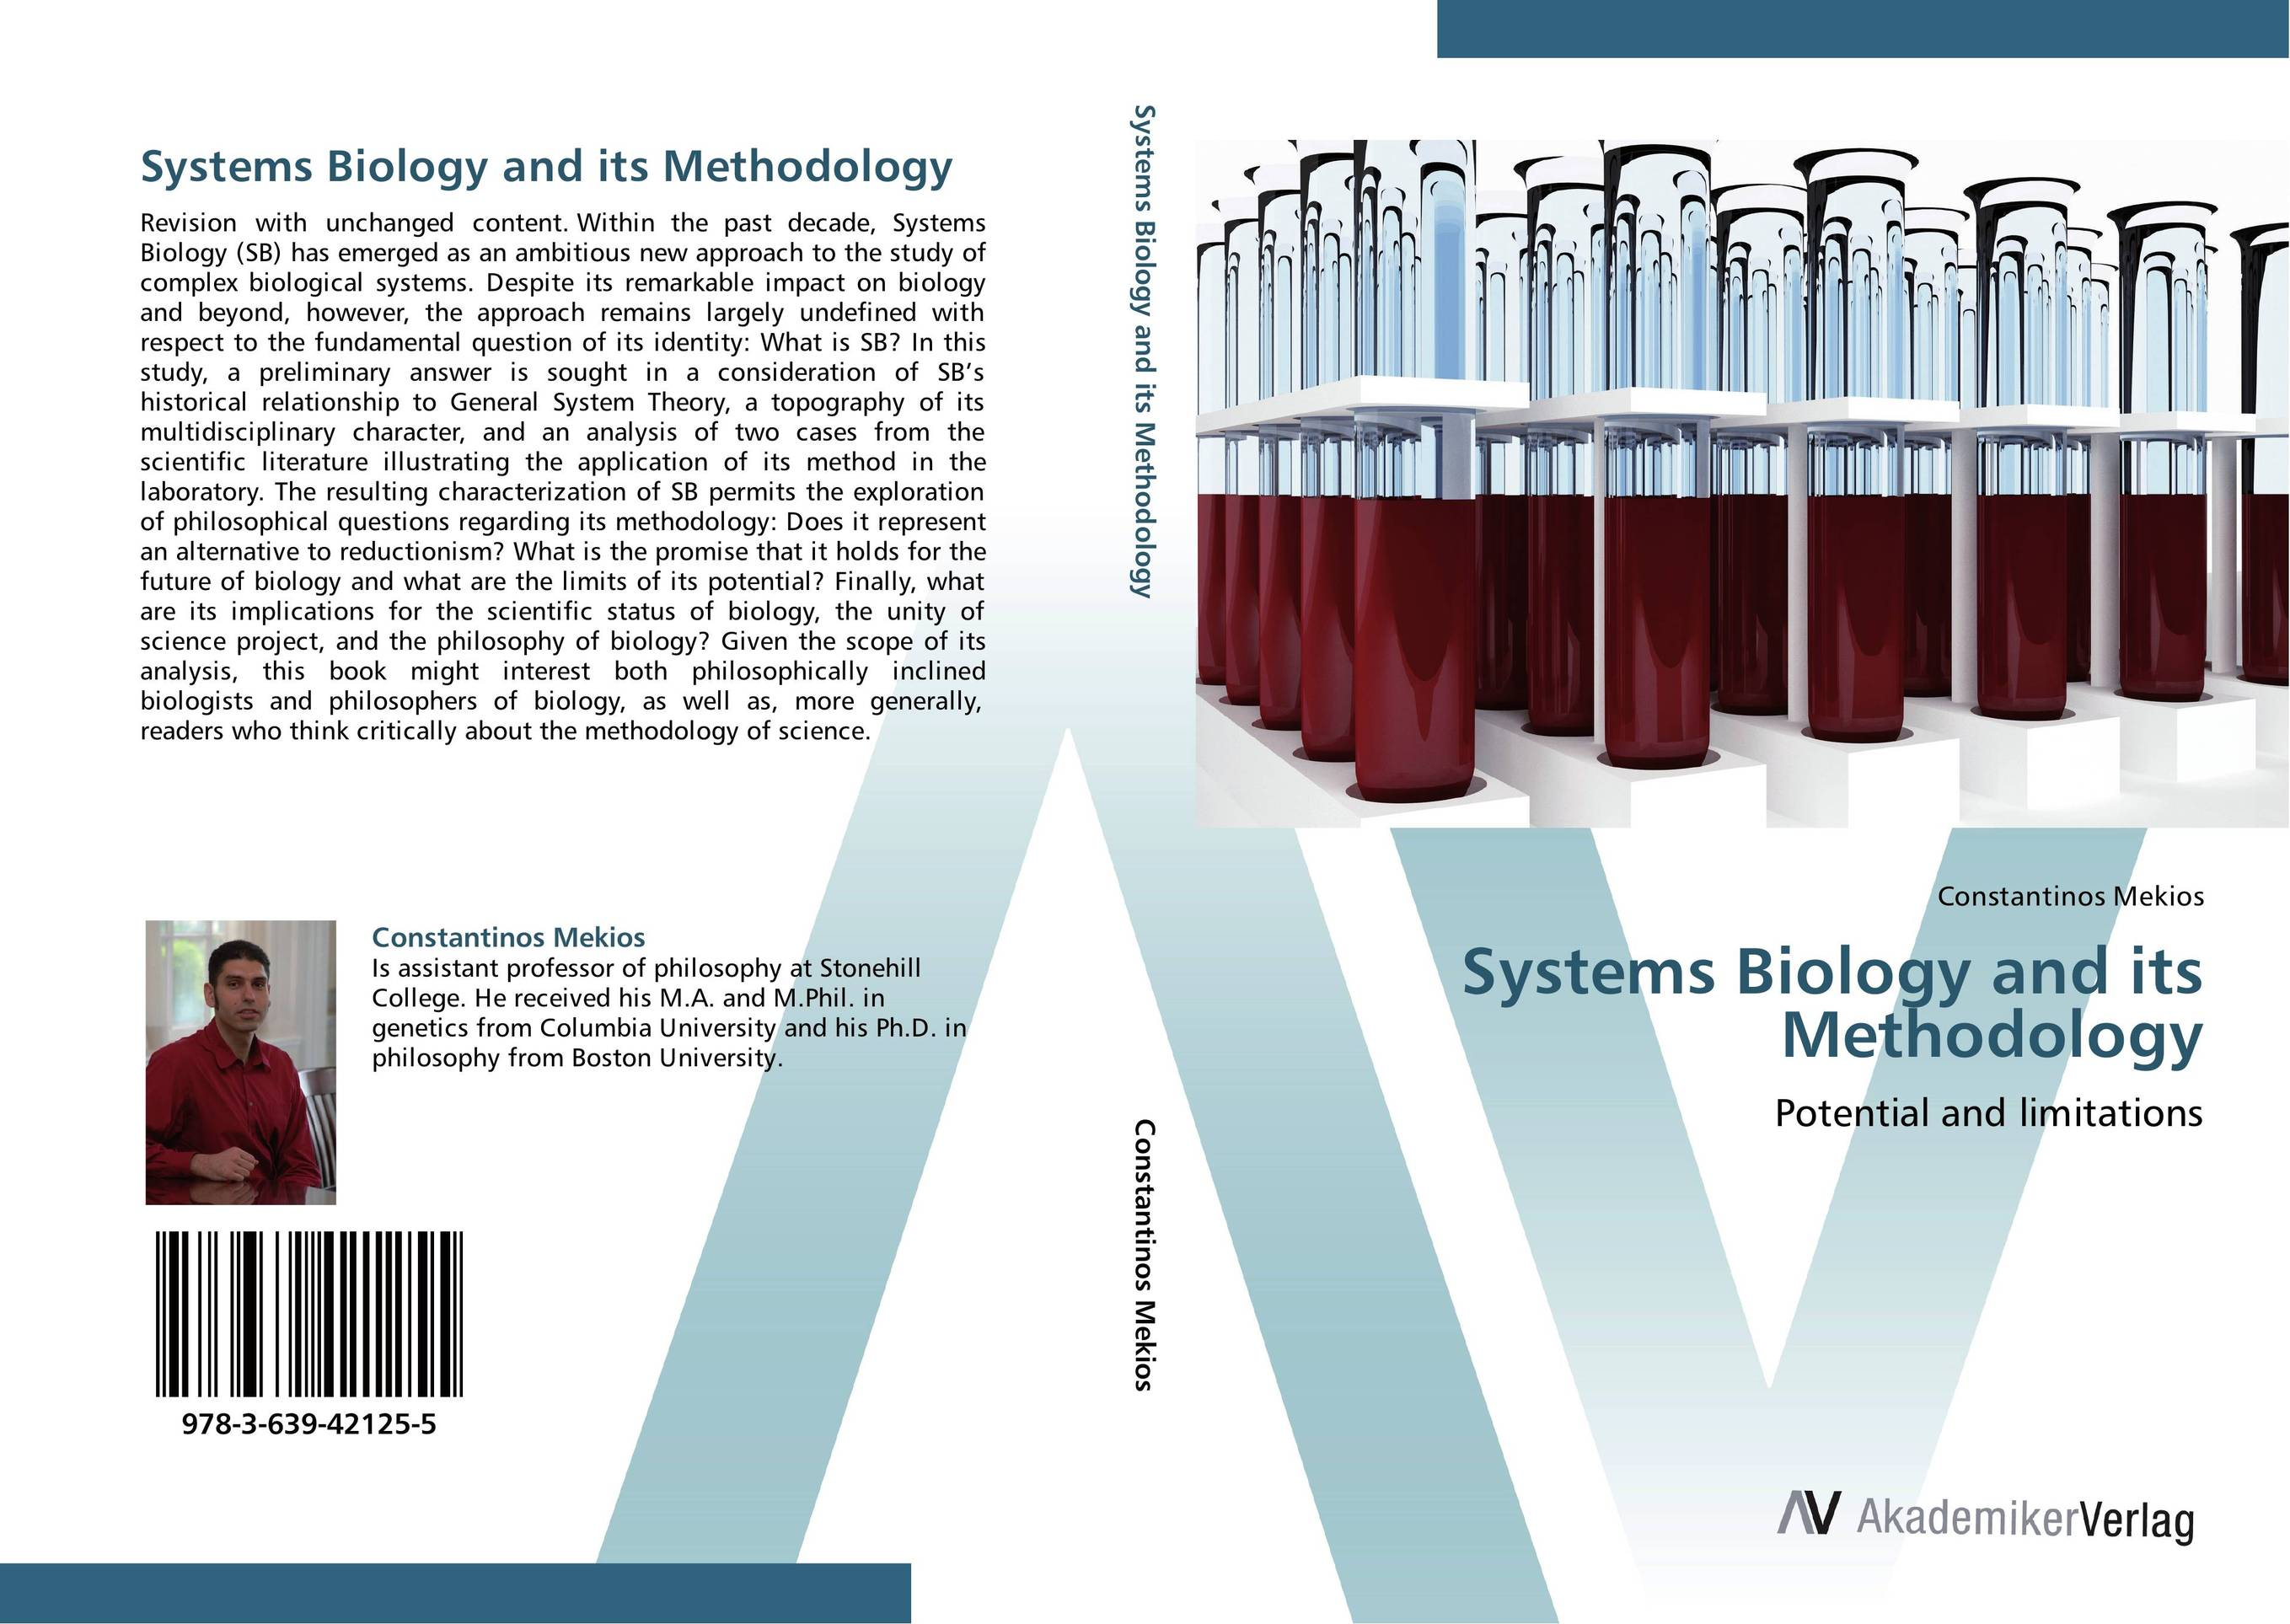 Systems Biology and its Methodology economic methodology